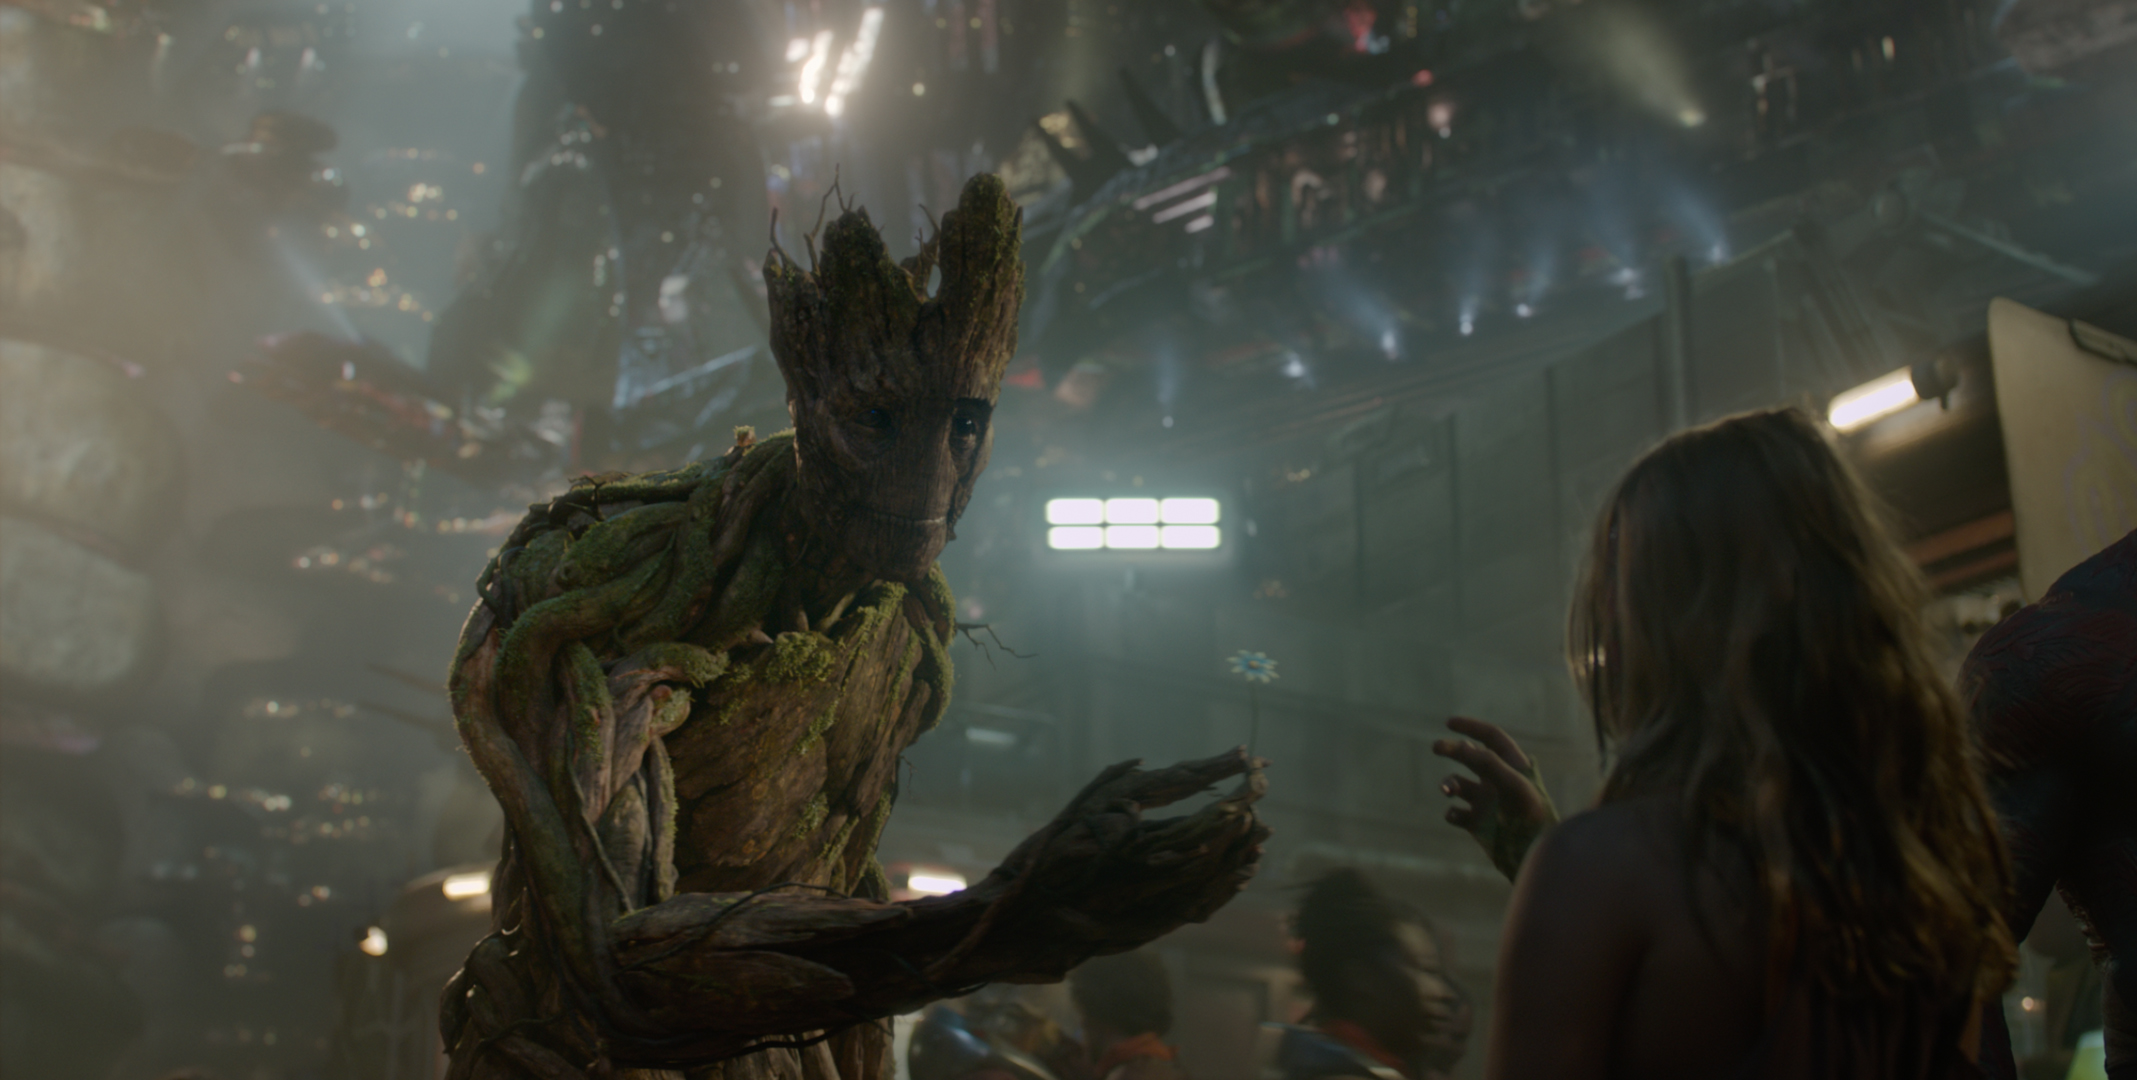 Guardians-Of-The-Galaxy-NK_FINALCC_GRD26_ft_dom_t2_v25rev_wt6.088631.jpg